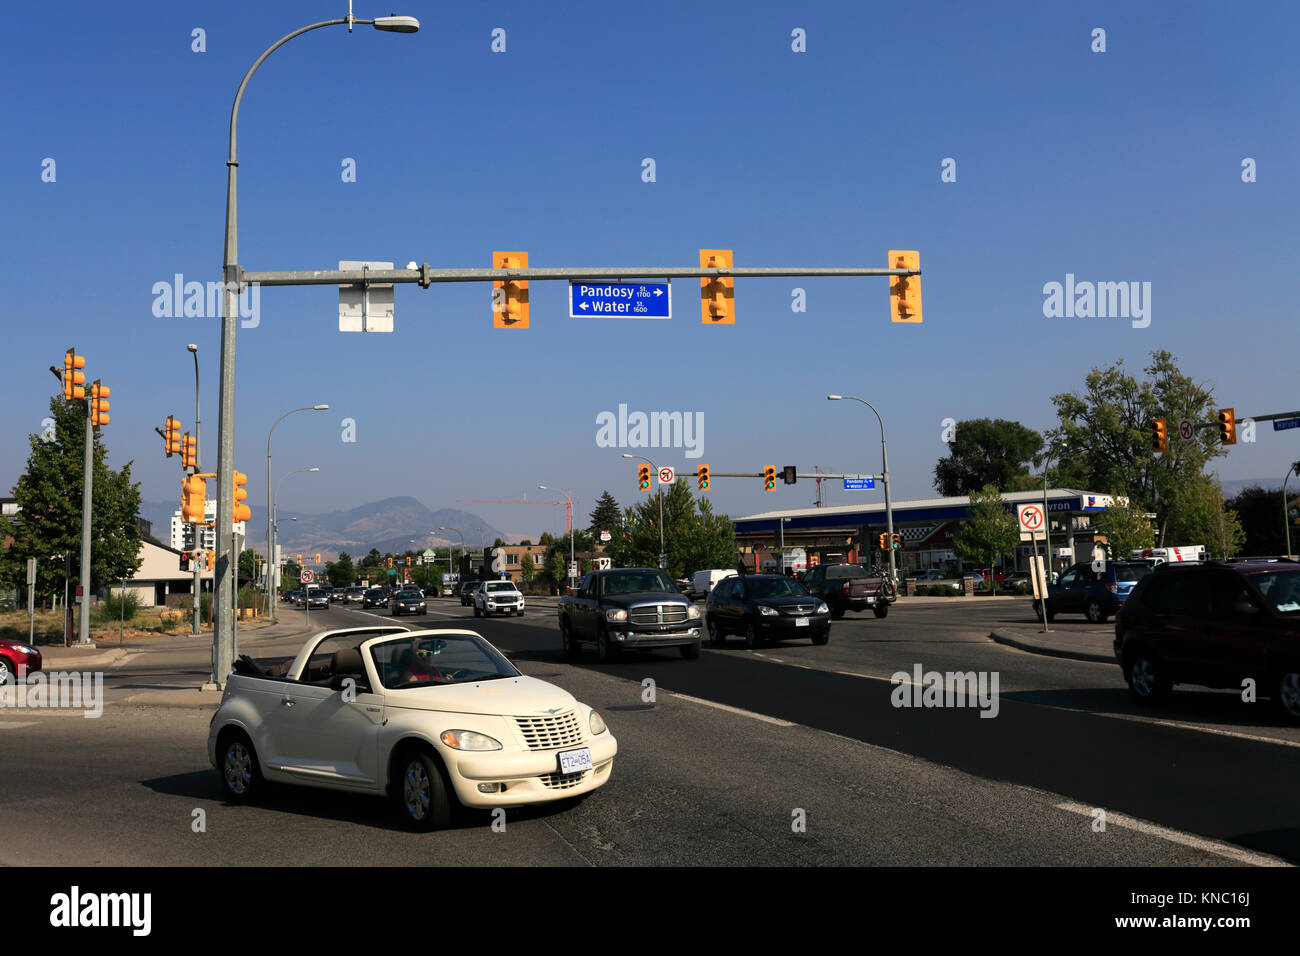 Highway 97 Stock Photos & Highway 97 Stock Images - Alamy